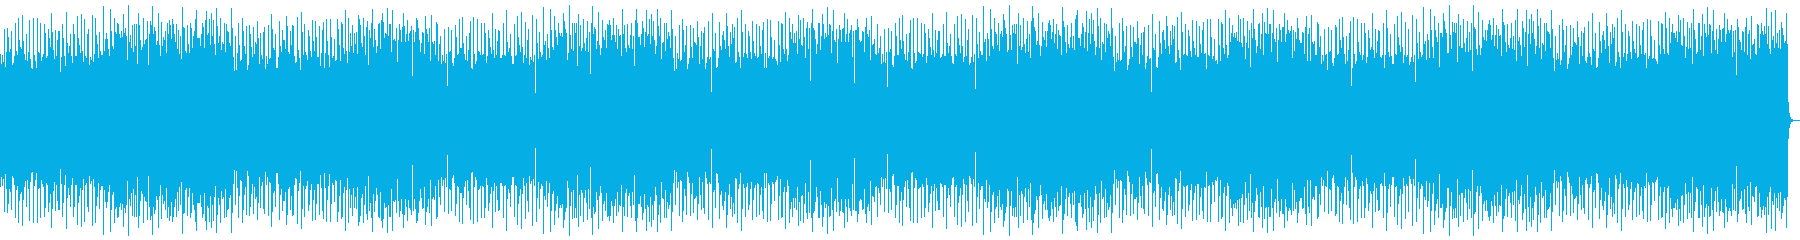 Soothing slow tempo music's reproduced waveform